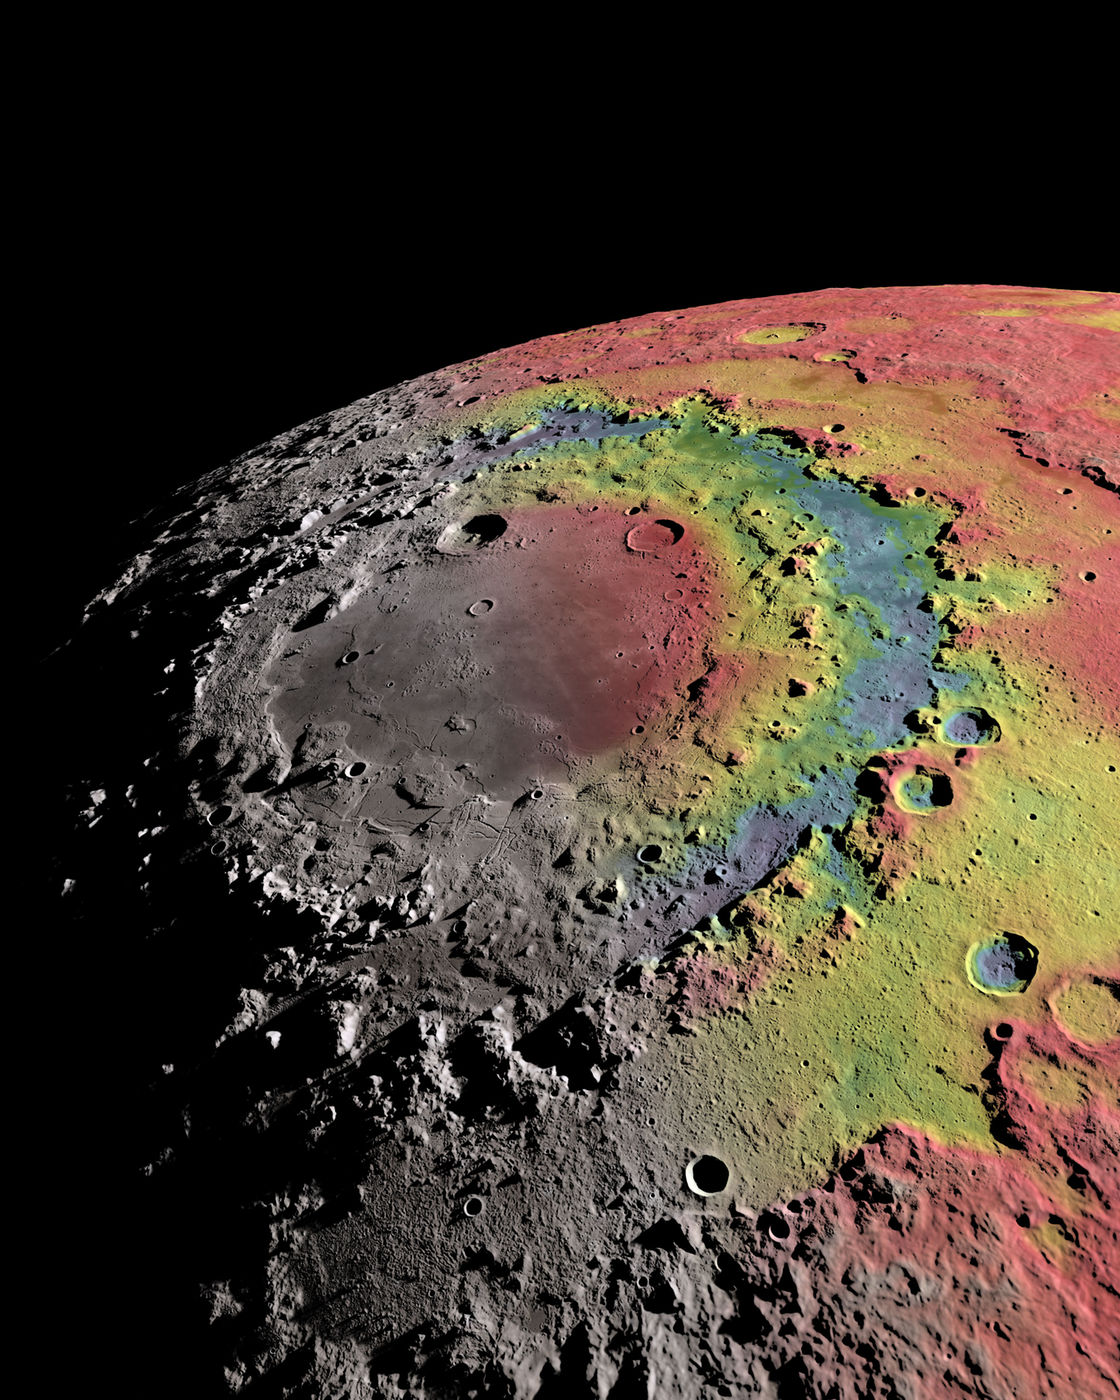 Planetary, extraterrestrial geology, and meteoritics |